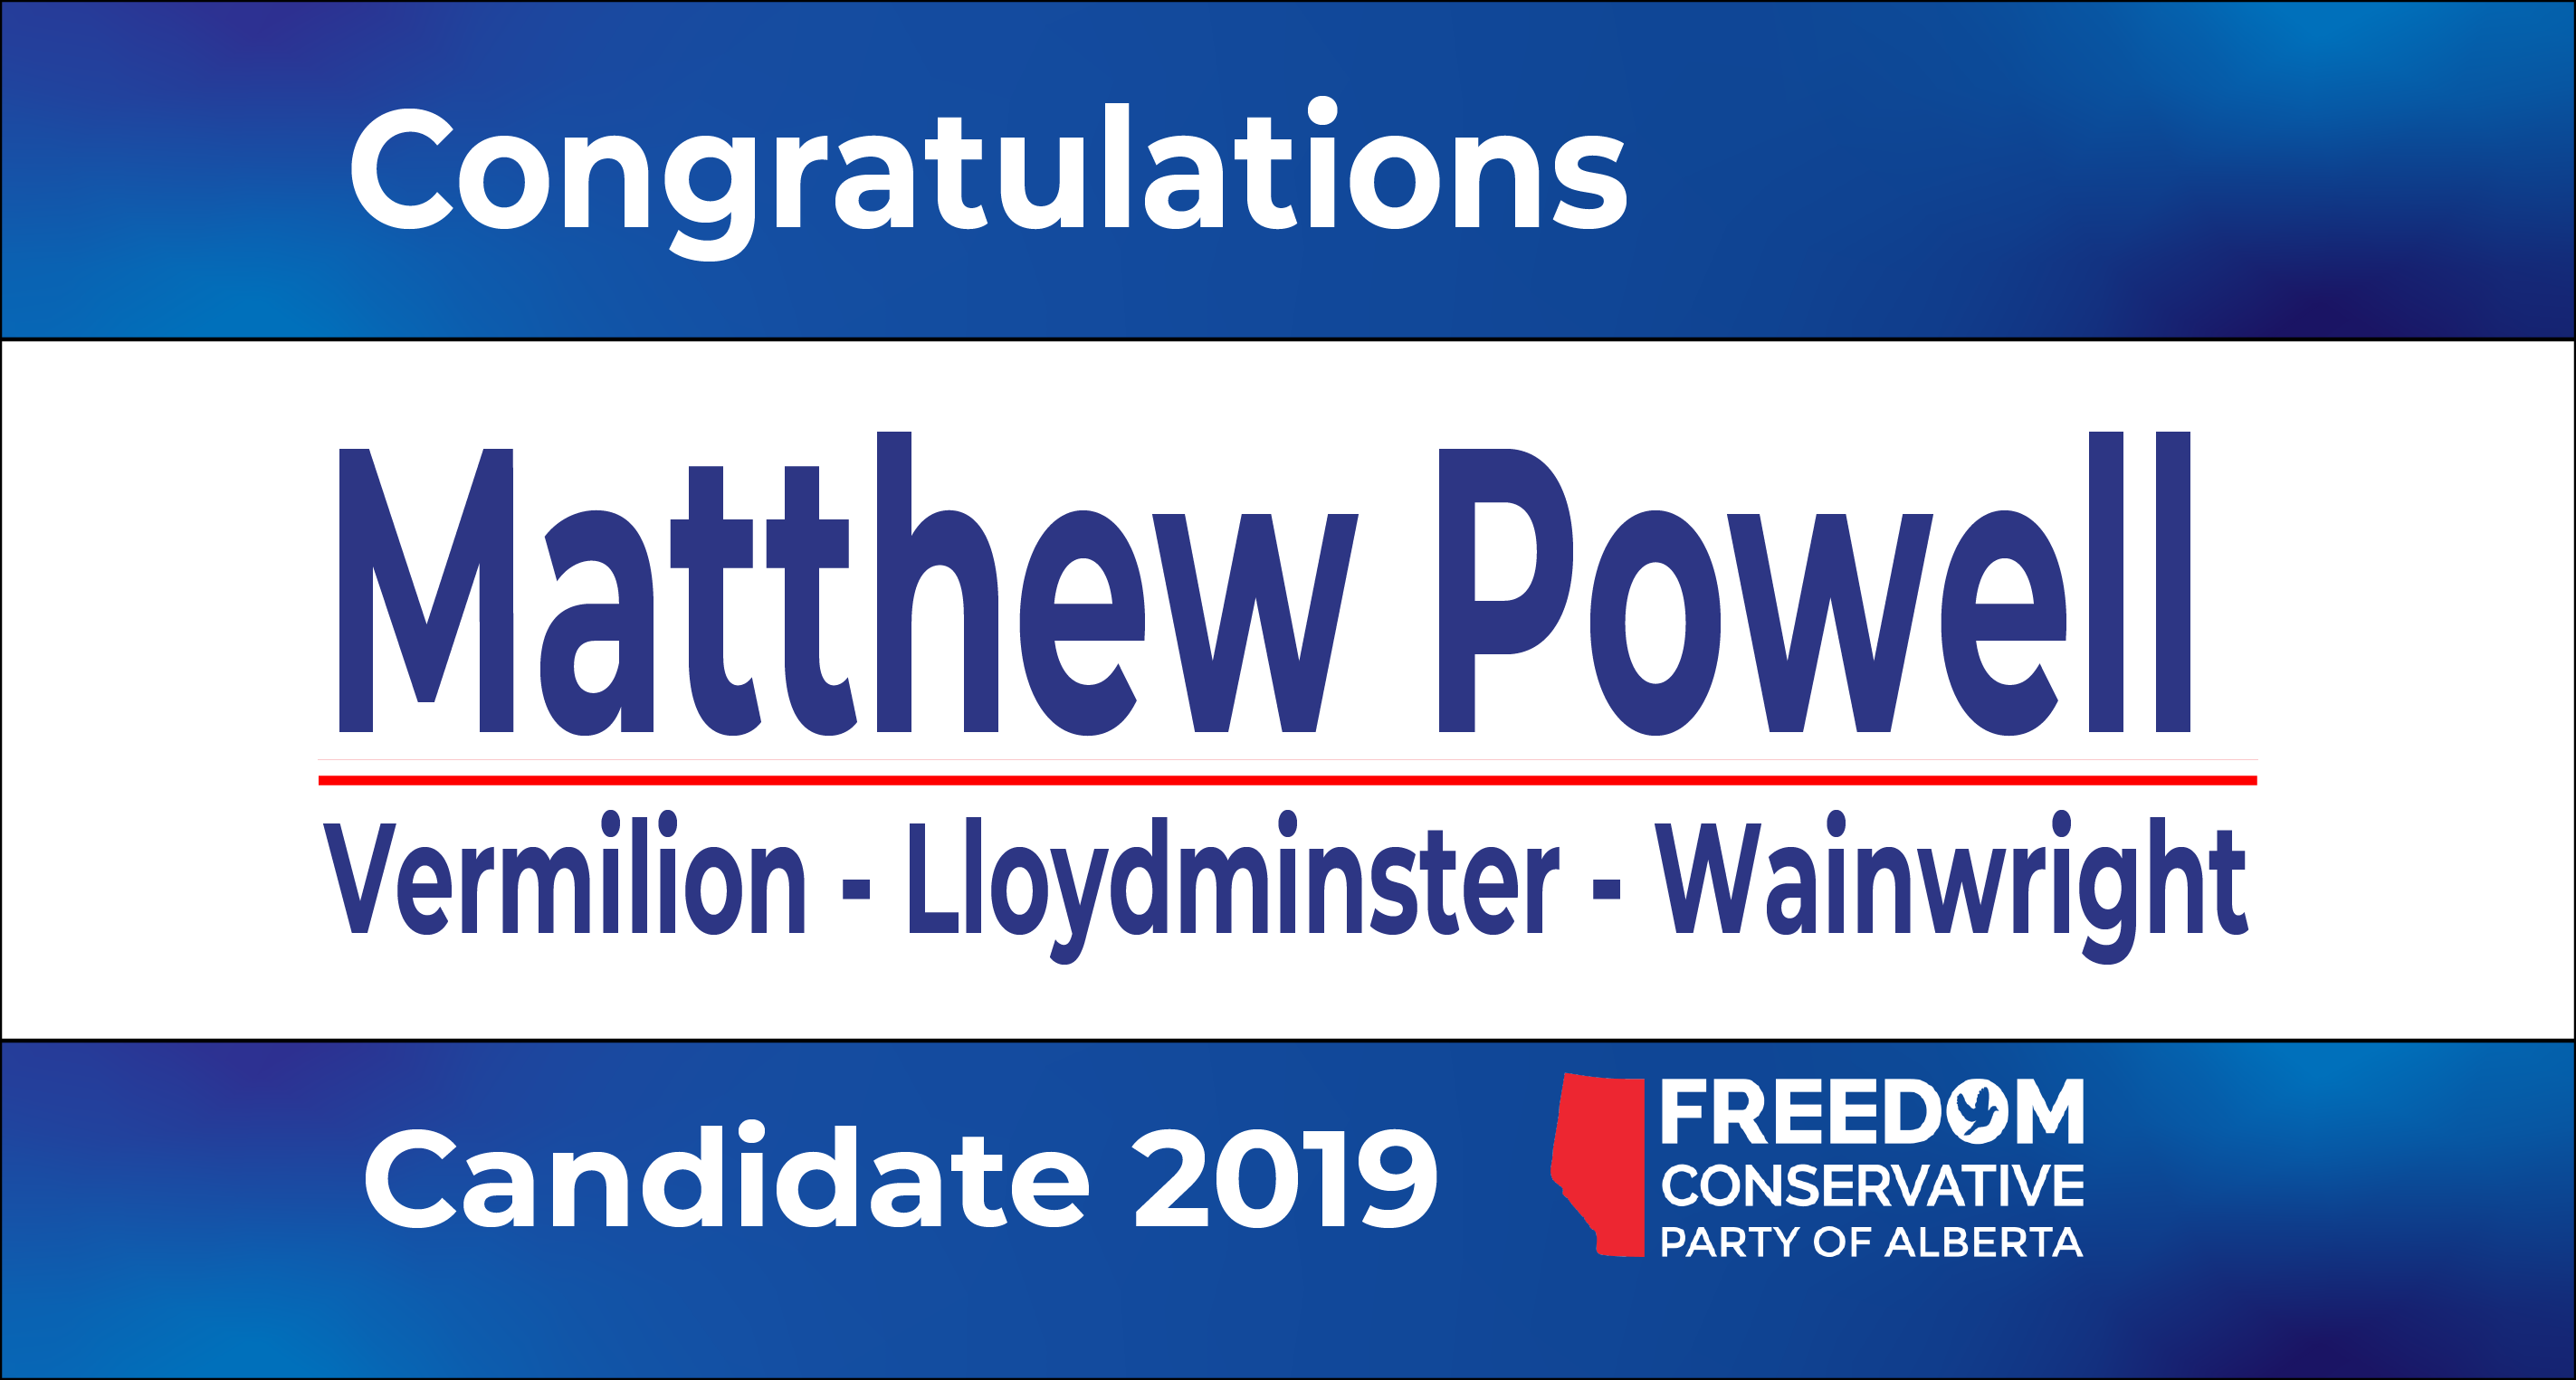 RELEASE: Matthew Powell Nominated as FCP Candidate for Vermilion – Lloydminster – Wainwright